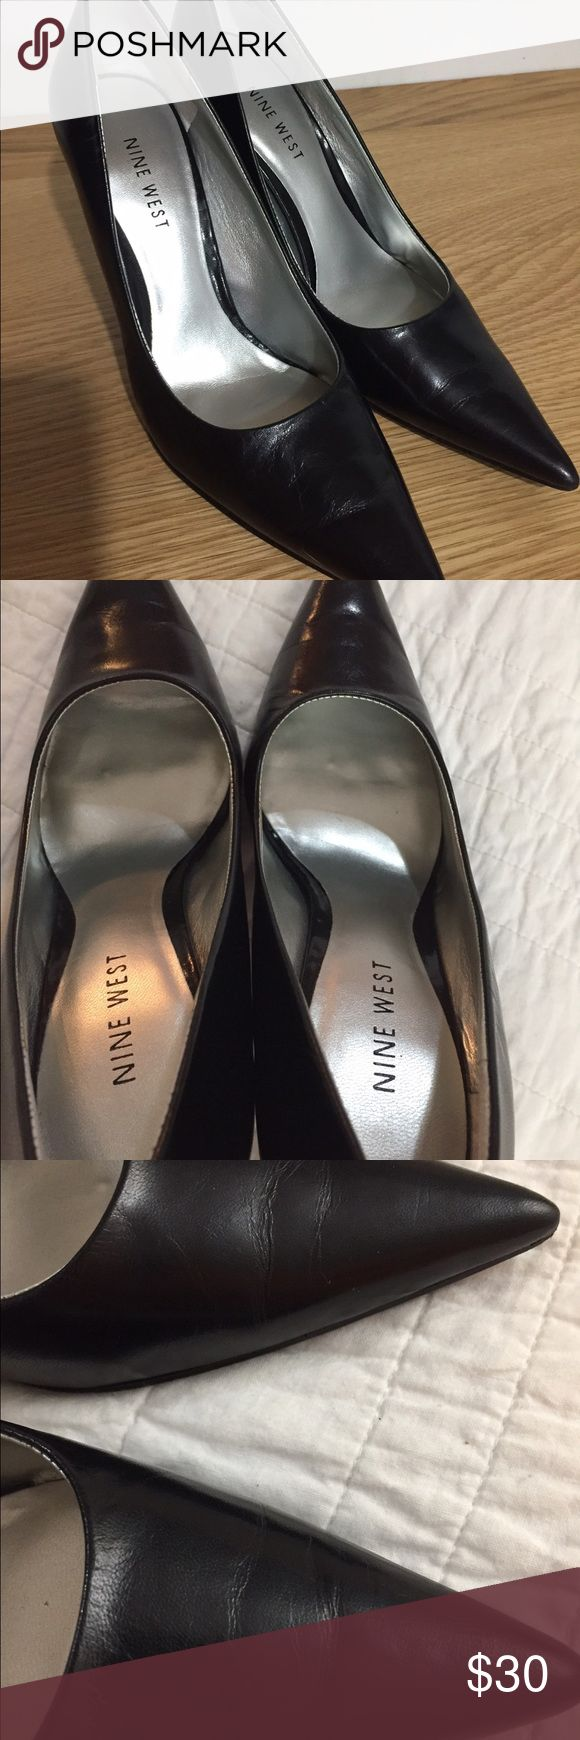 Nine West heels Worn as shown in pictures but still in great condition. Soft leather. Very comfy. They are a 6 med Nine West Shoes Heels